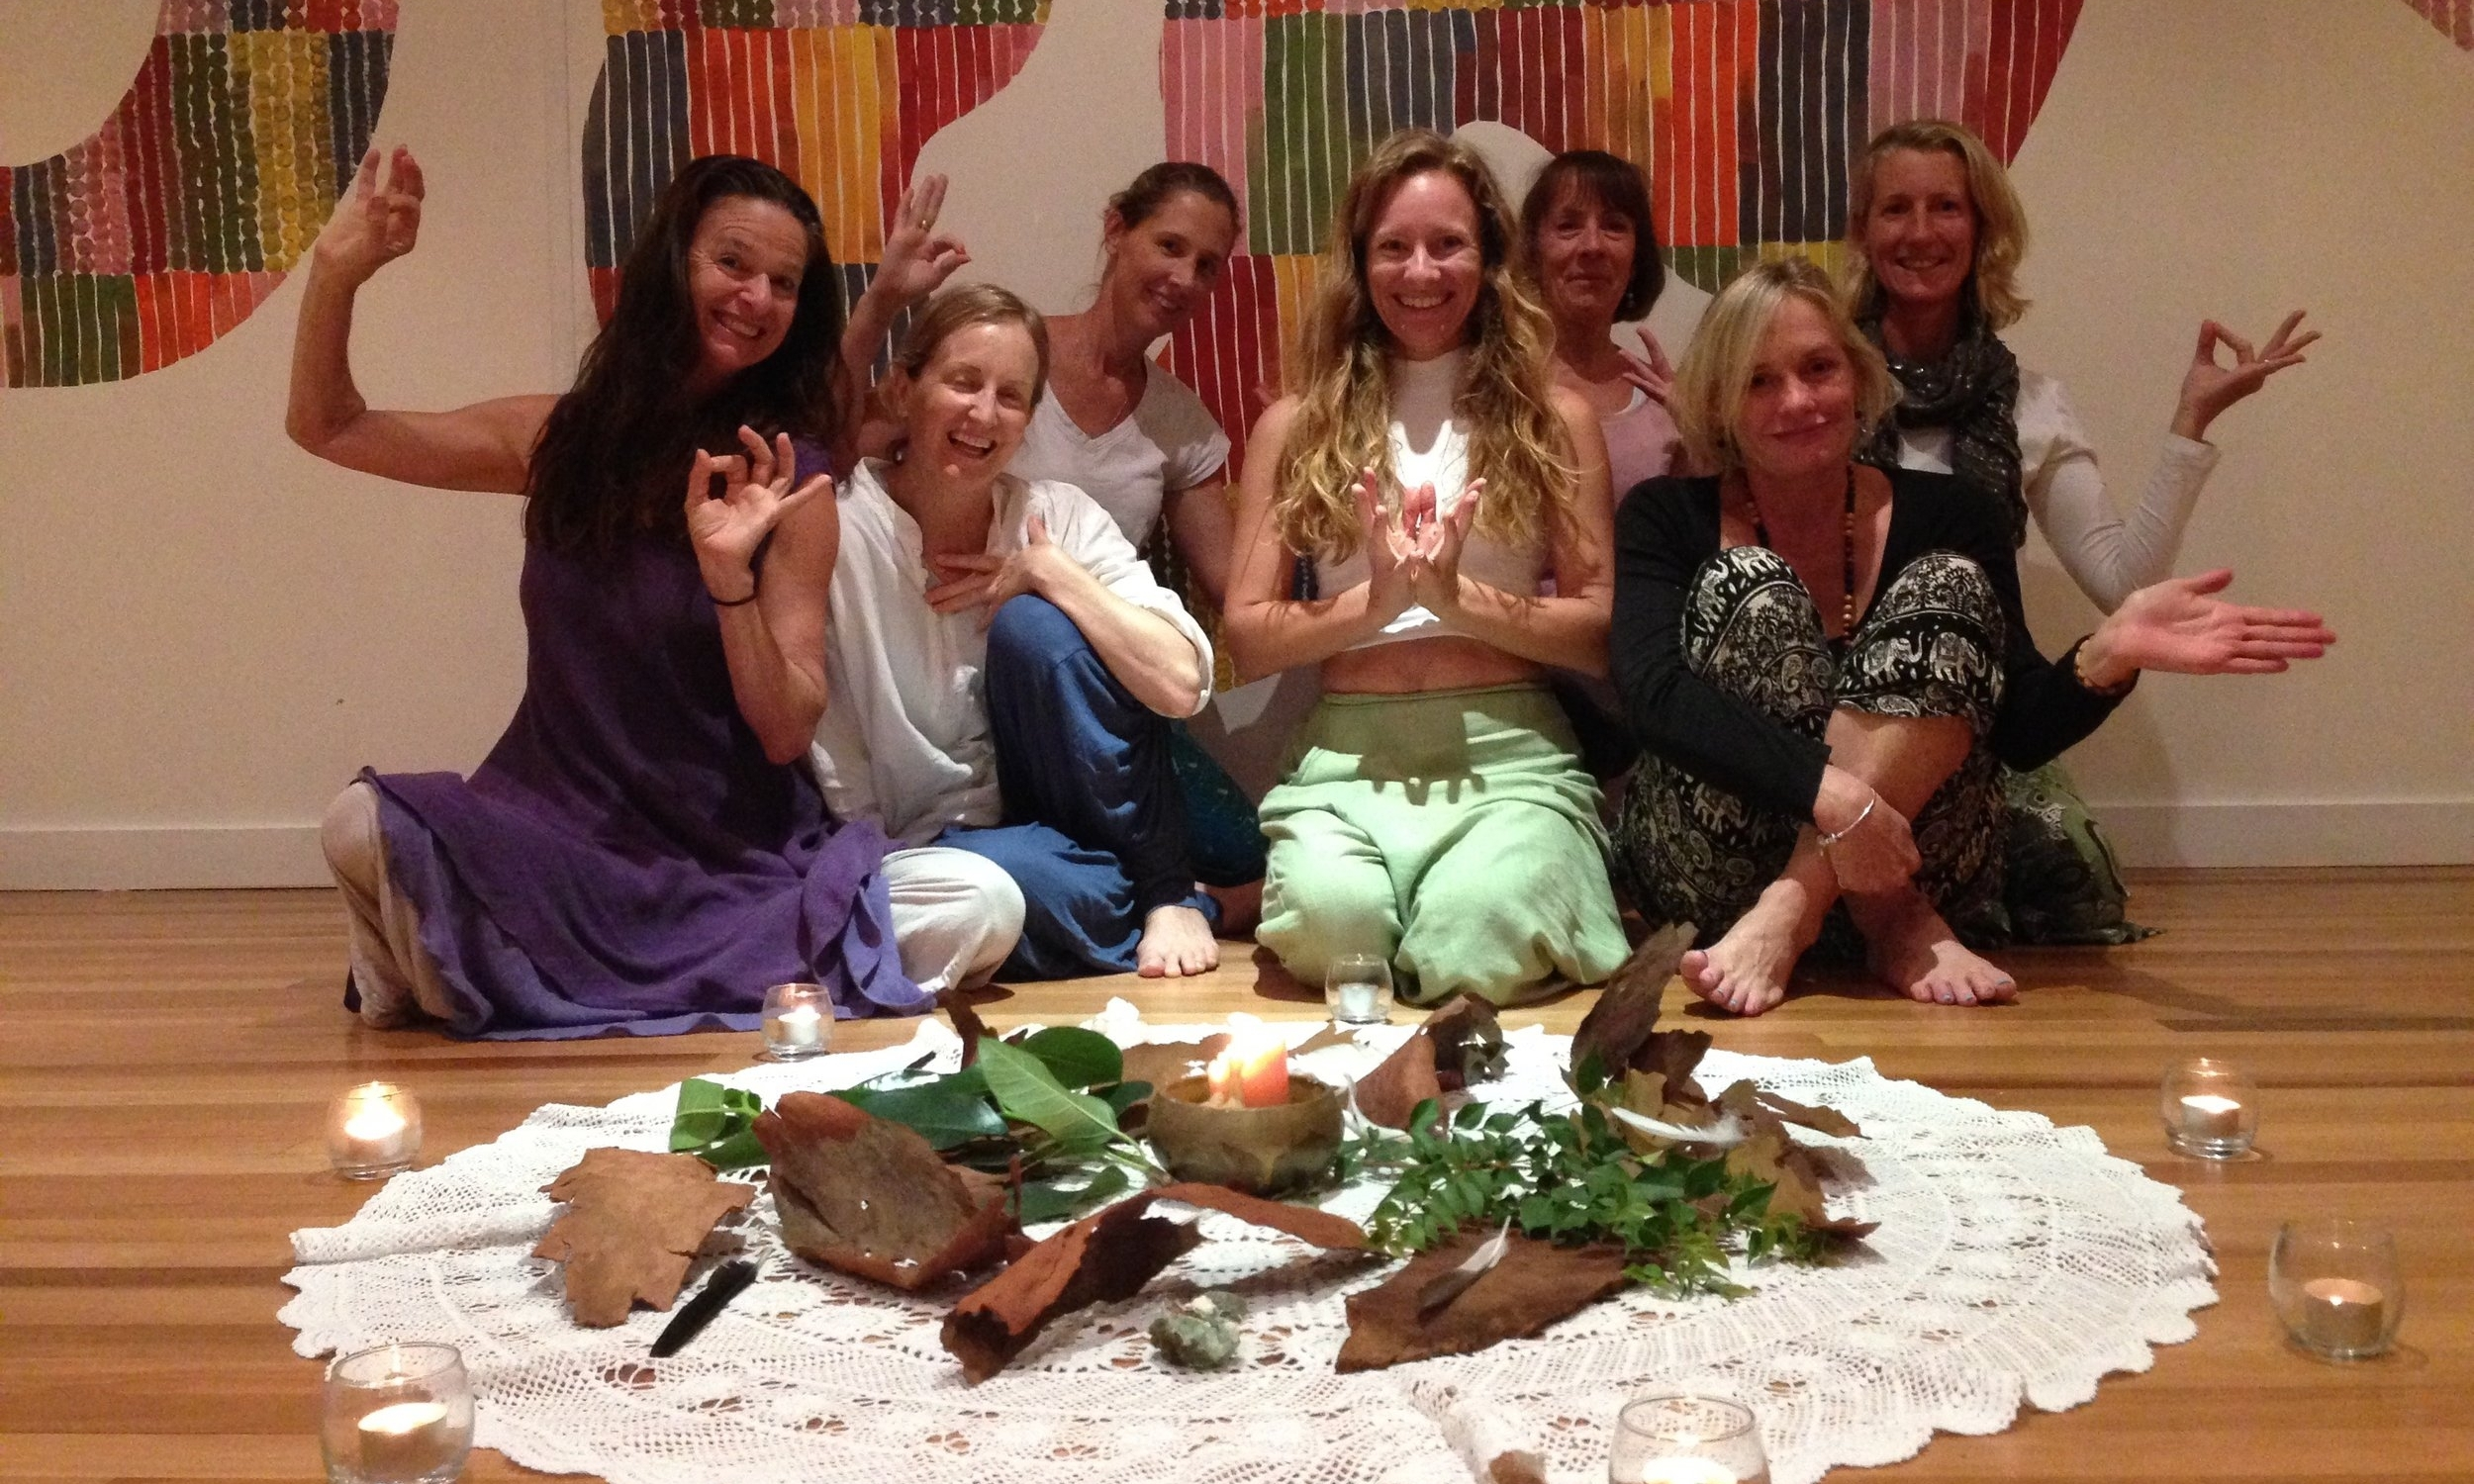 BODY TEMPLESACRED WOMEN'S CIRCLE - If connecting with yourself and your body is a goal for you this year, there's no better way to start than to join Carol for this very special event next week. She will guide you through meditation, dance, a sound bath and more - encouraging curiosity and wonder - to finally enjoy being in your own body and to experience the sacred connection between your body, mind and spirit.Friday 2nd March, 6 - 8.30pm, with Carol